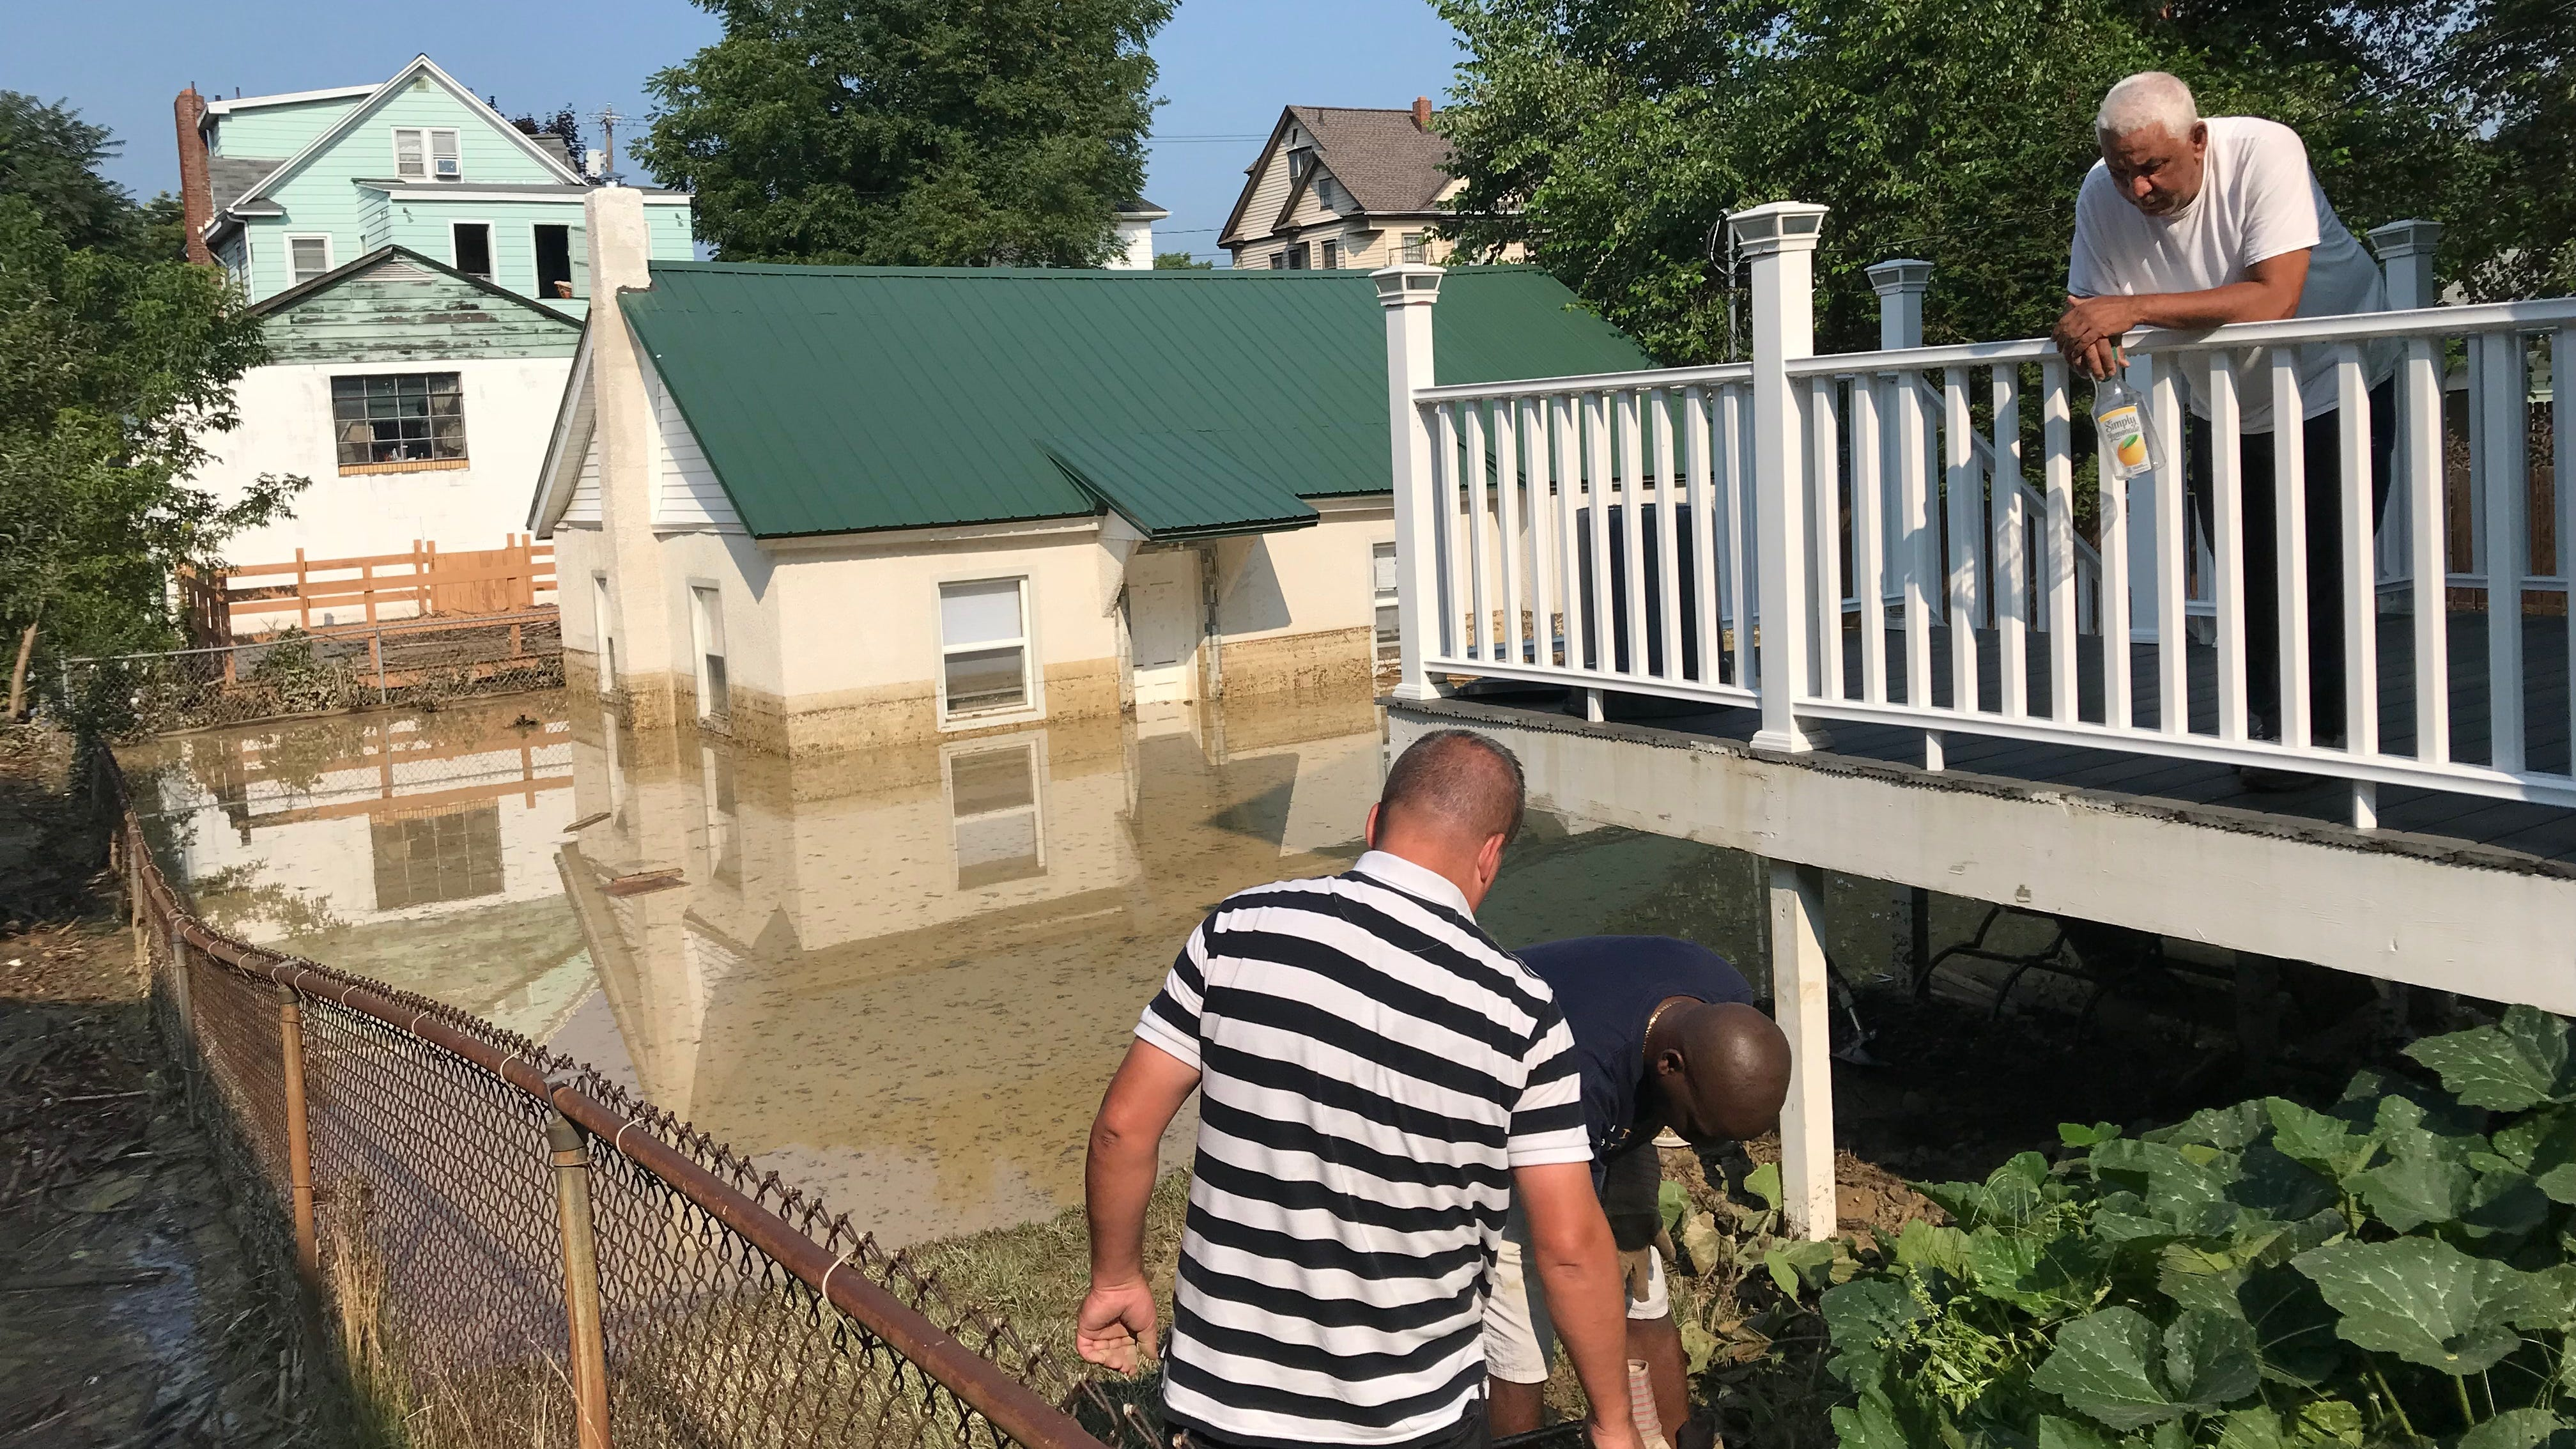 Flood Cleanup: The latest on State of Emergency, road closures and water levels